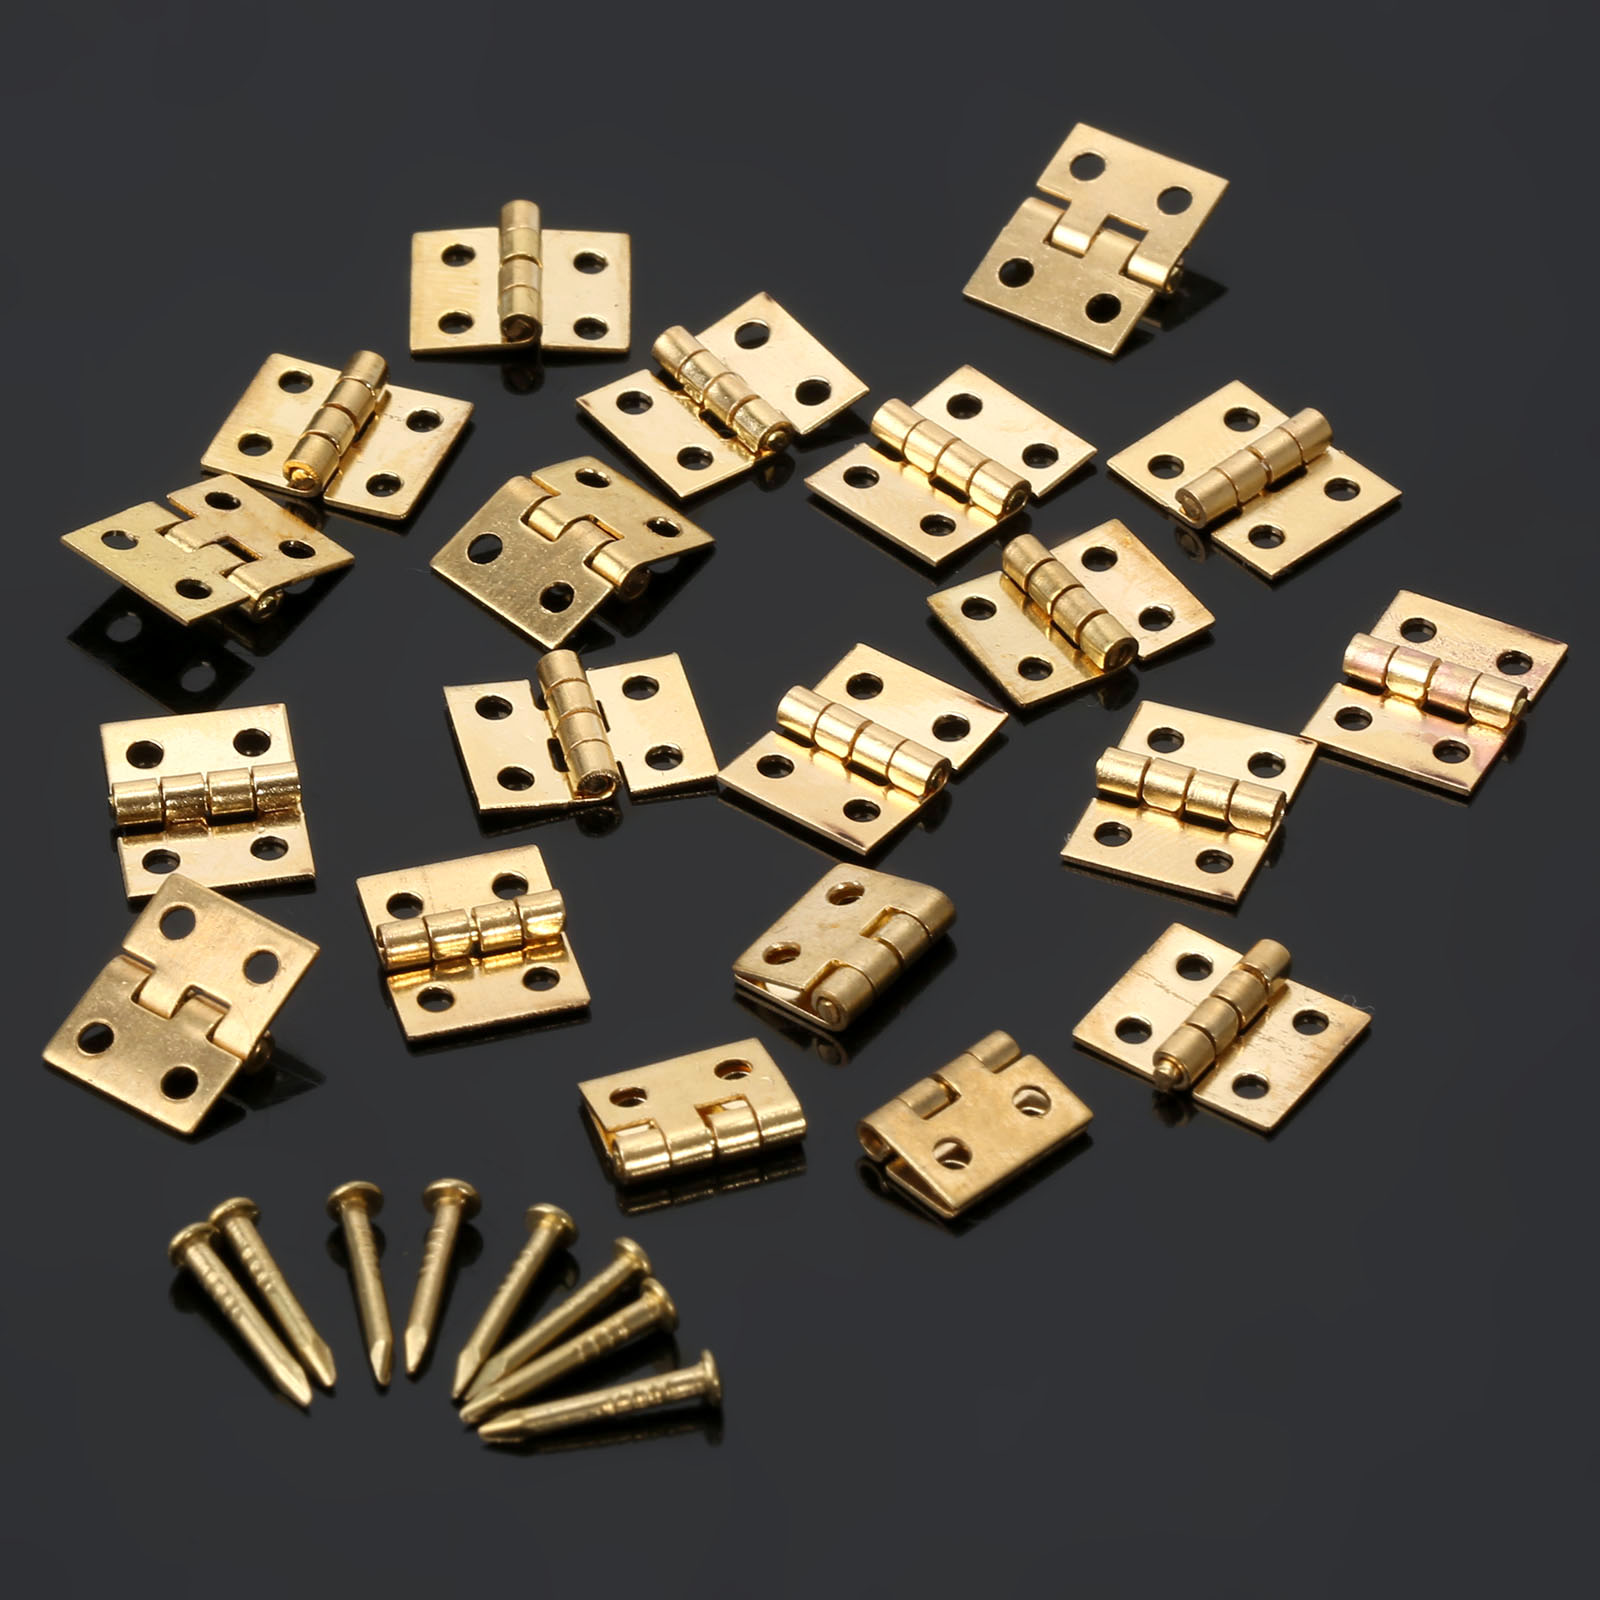 20Pcs Brass Plated Mini Hinge Small Decorative Jewelry Wooden Box Cabinet Door Hinges with Nails Furniture Accessories 10x8mm 10pcs cabinet door butt hinges mini drawer bronze decorative mini hinges diy accessories small wooden box decoration